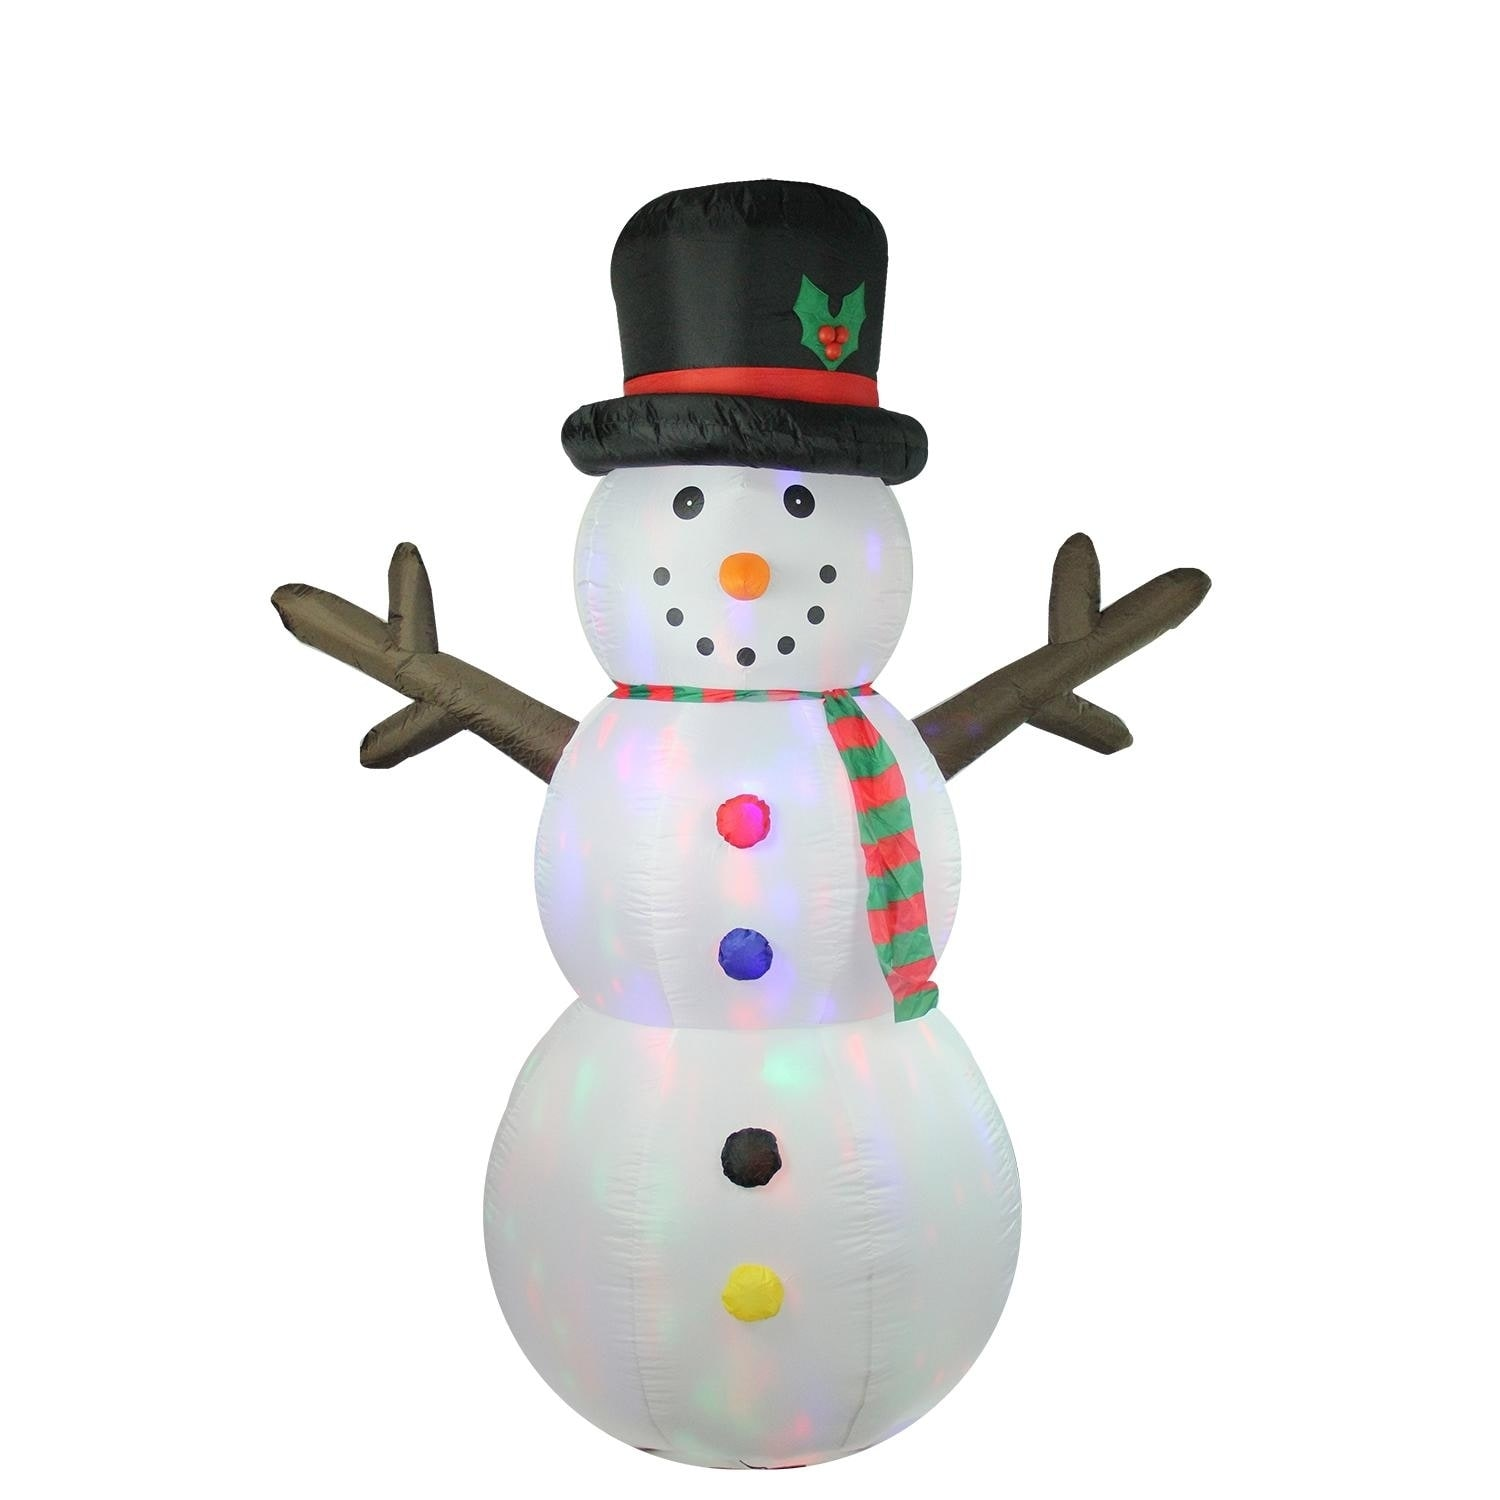 Lb International 8' Inflatable Lighted Twinkle Snowman Ch...